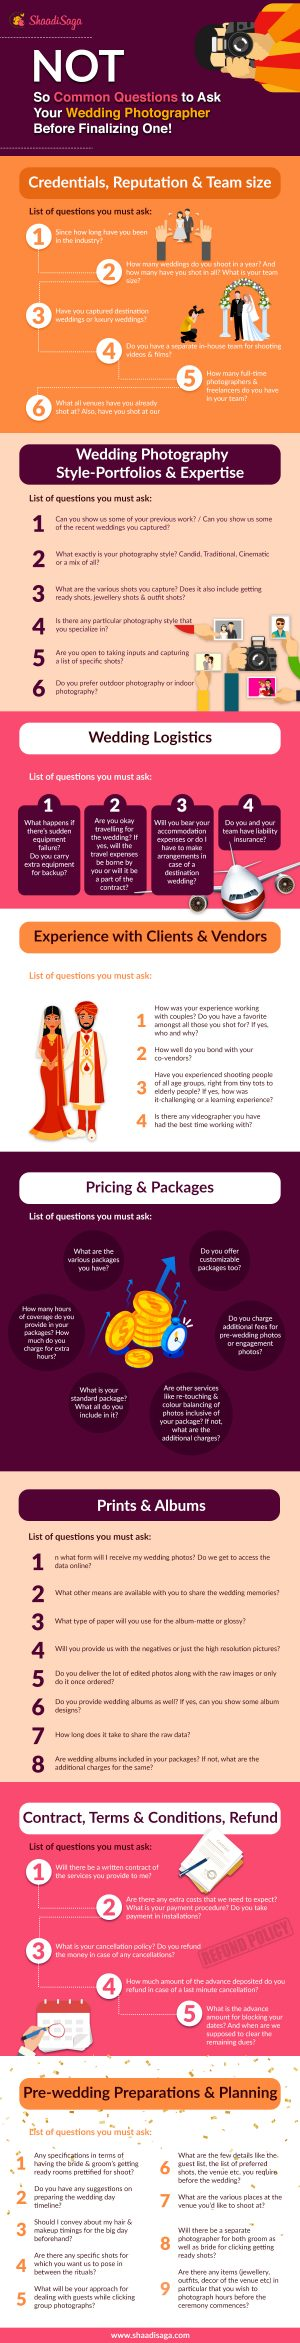 How to Hire The Best Wedding Photographer - Ultimate Guide